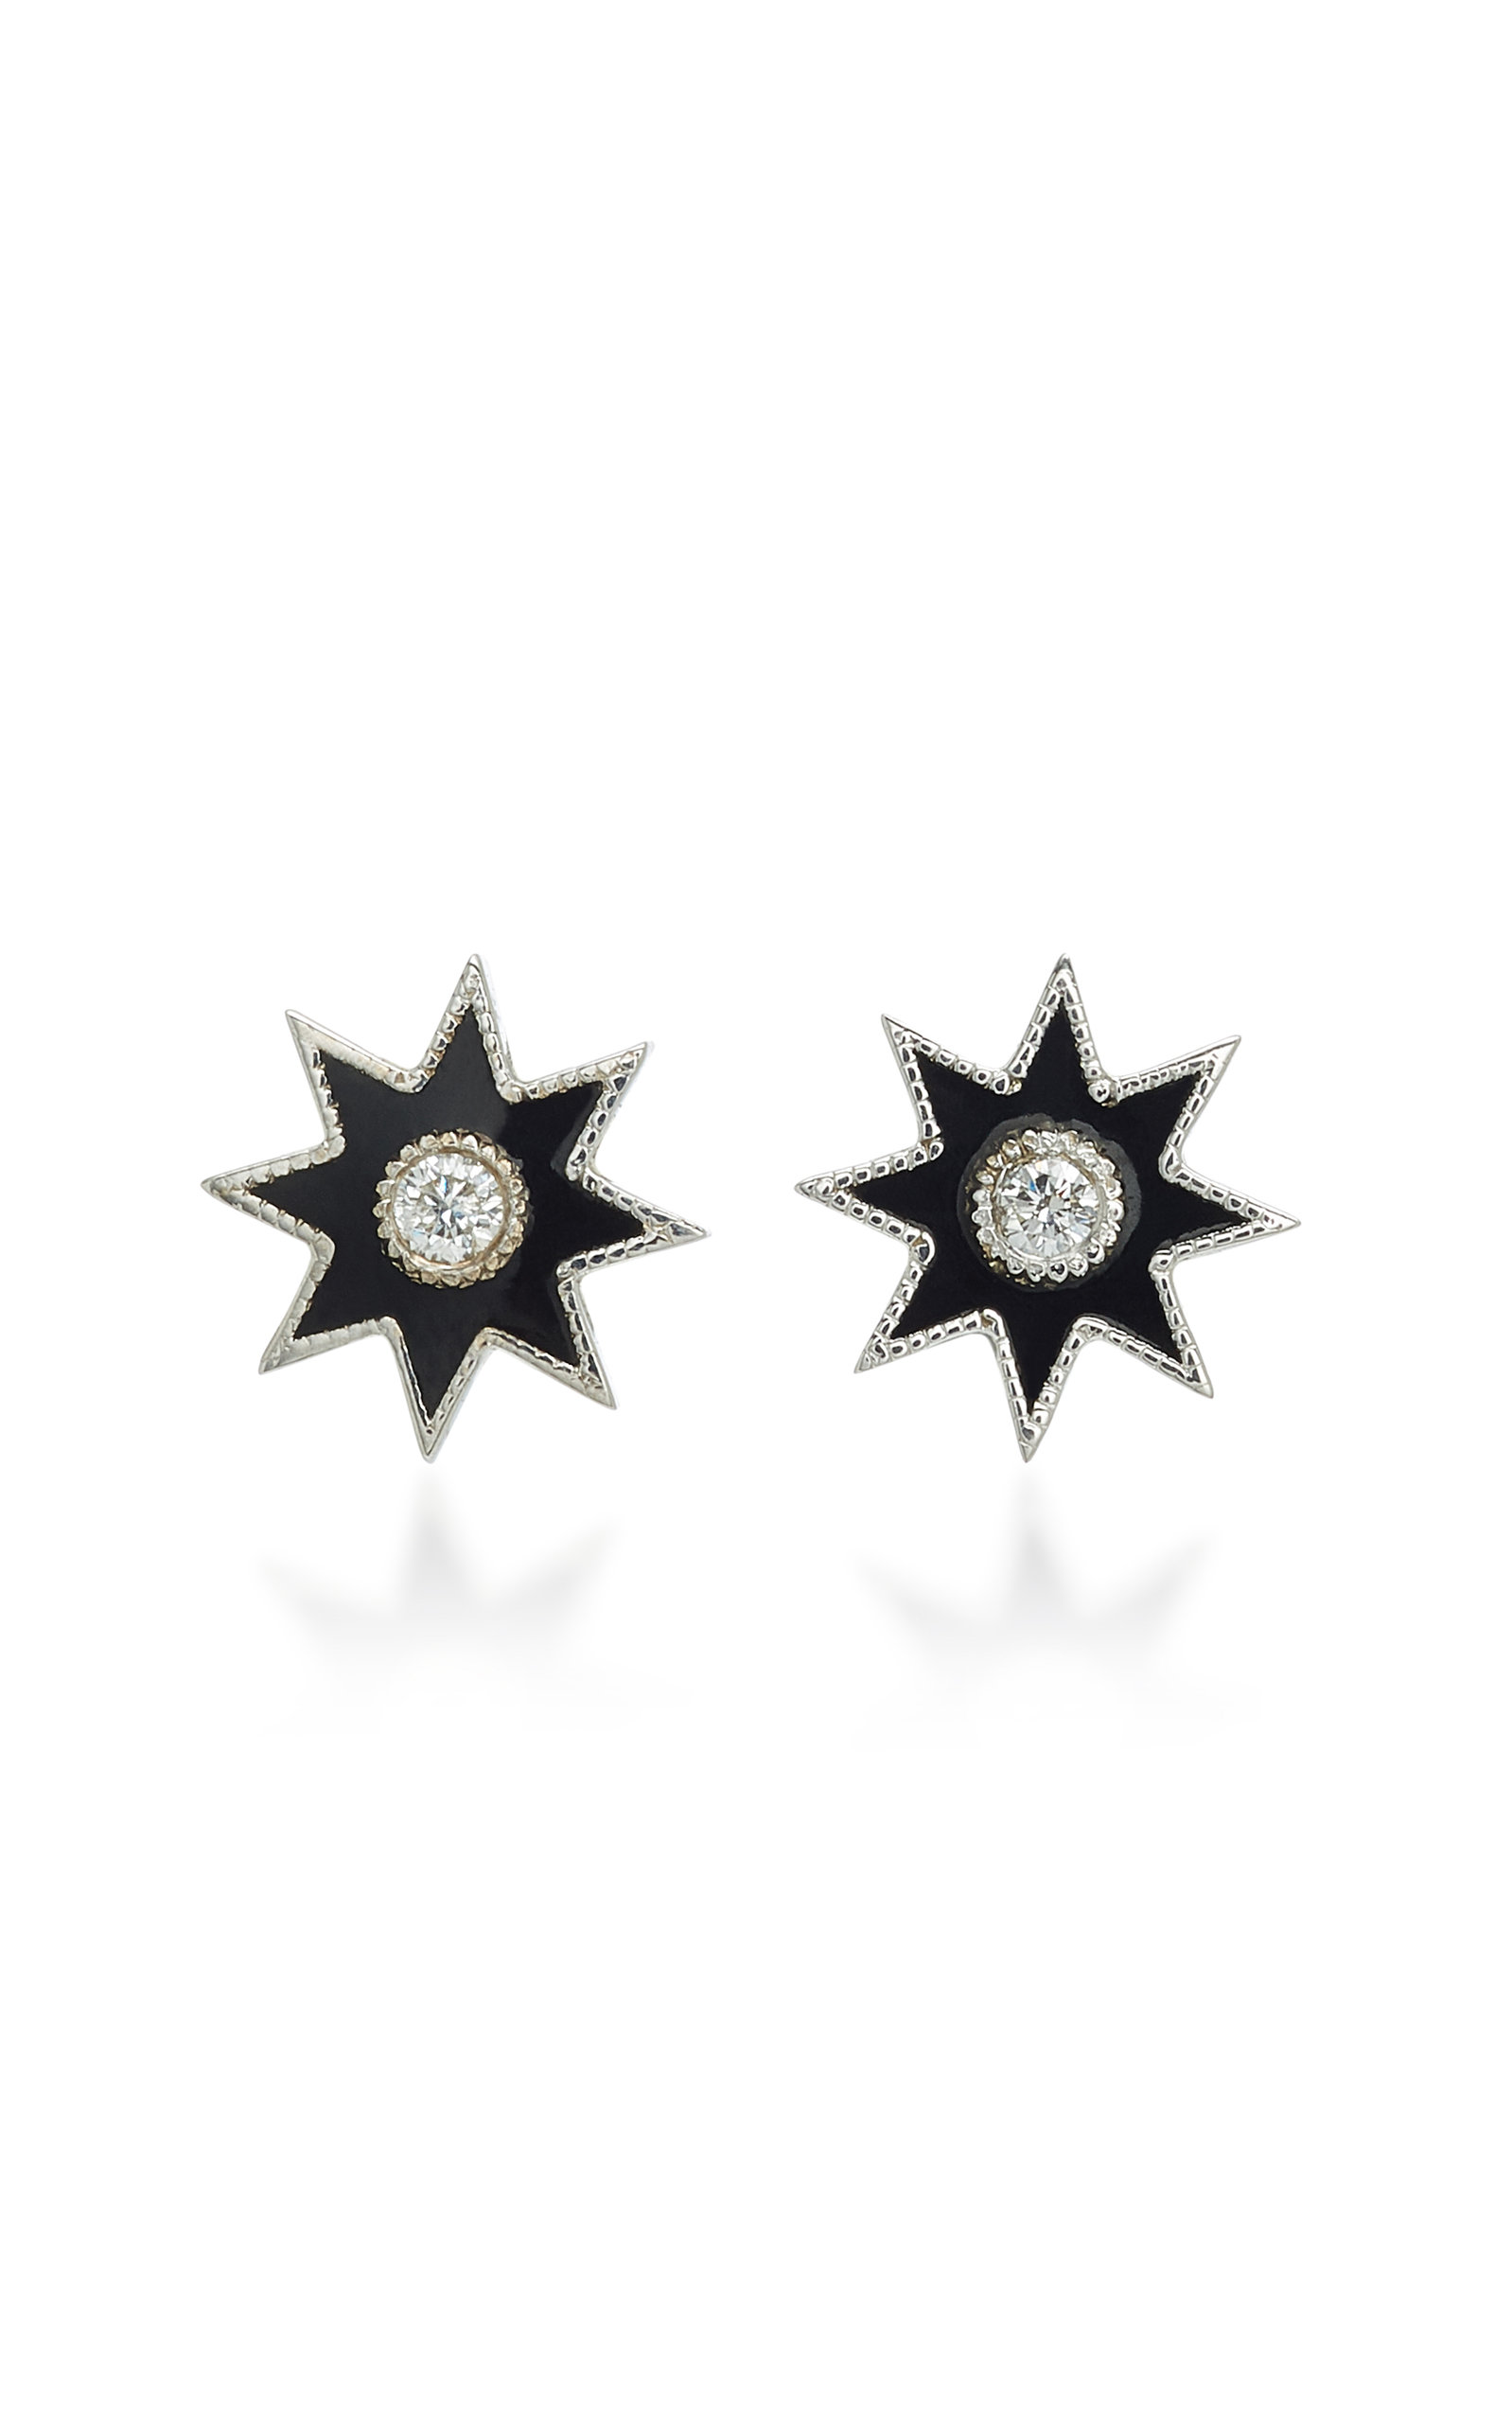 COLETTE JEWELRY TWINKLE STAR 18K WHITE GOLD DIAMOND AND ENAMEL EARRINGS